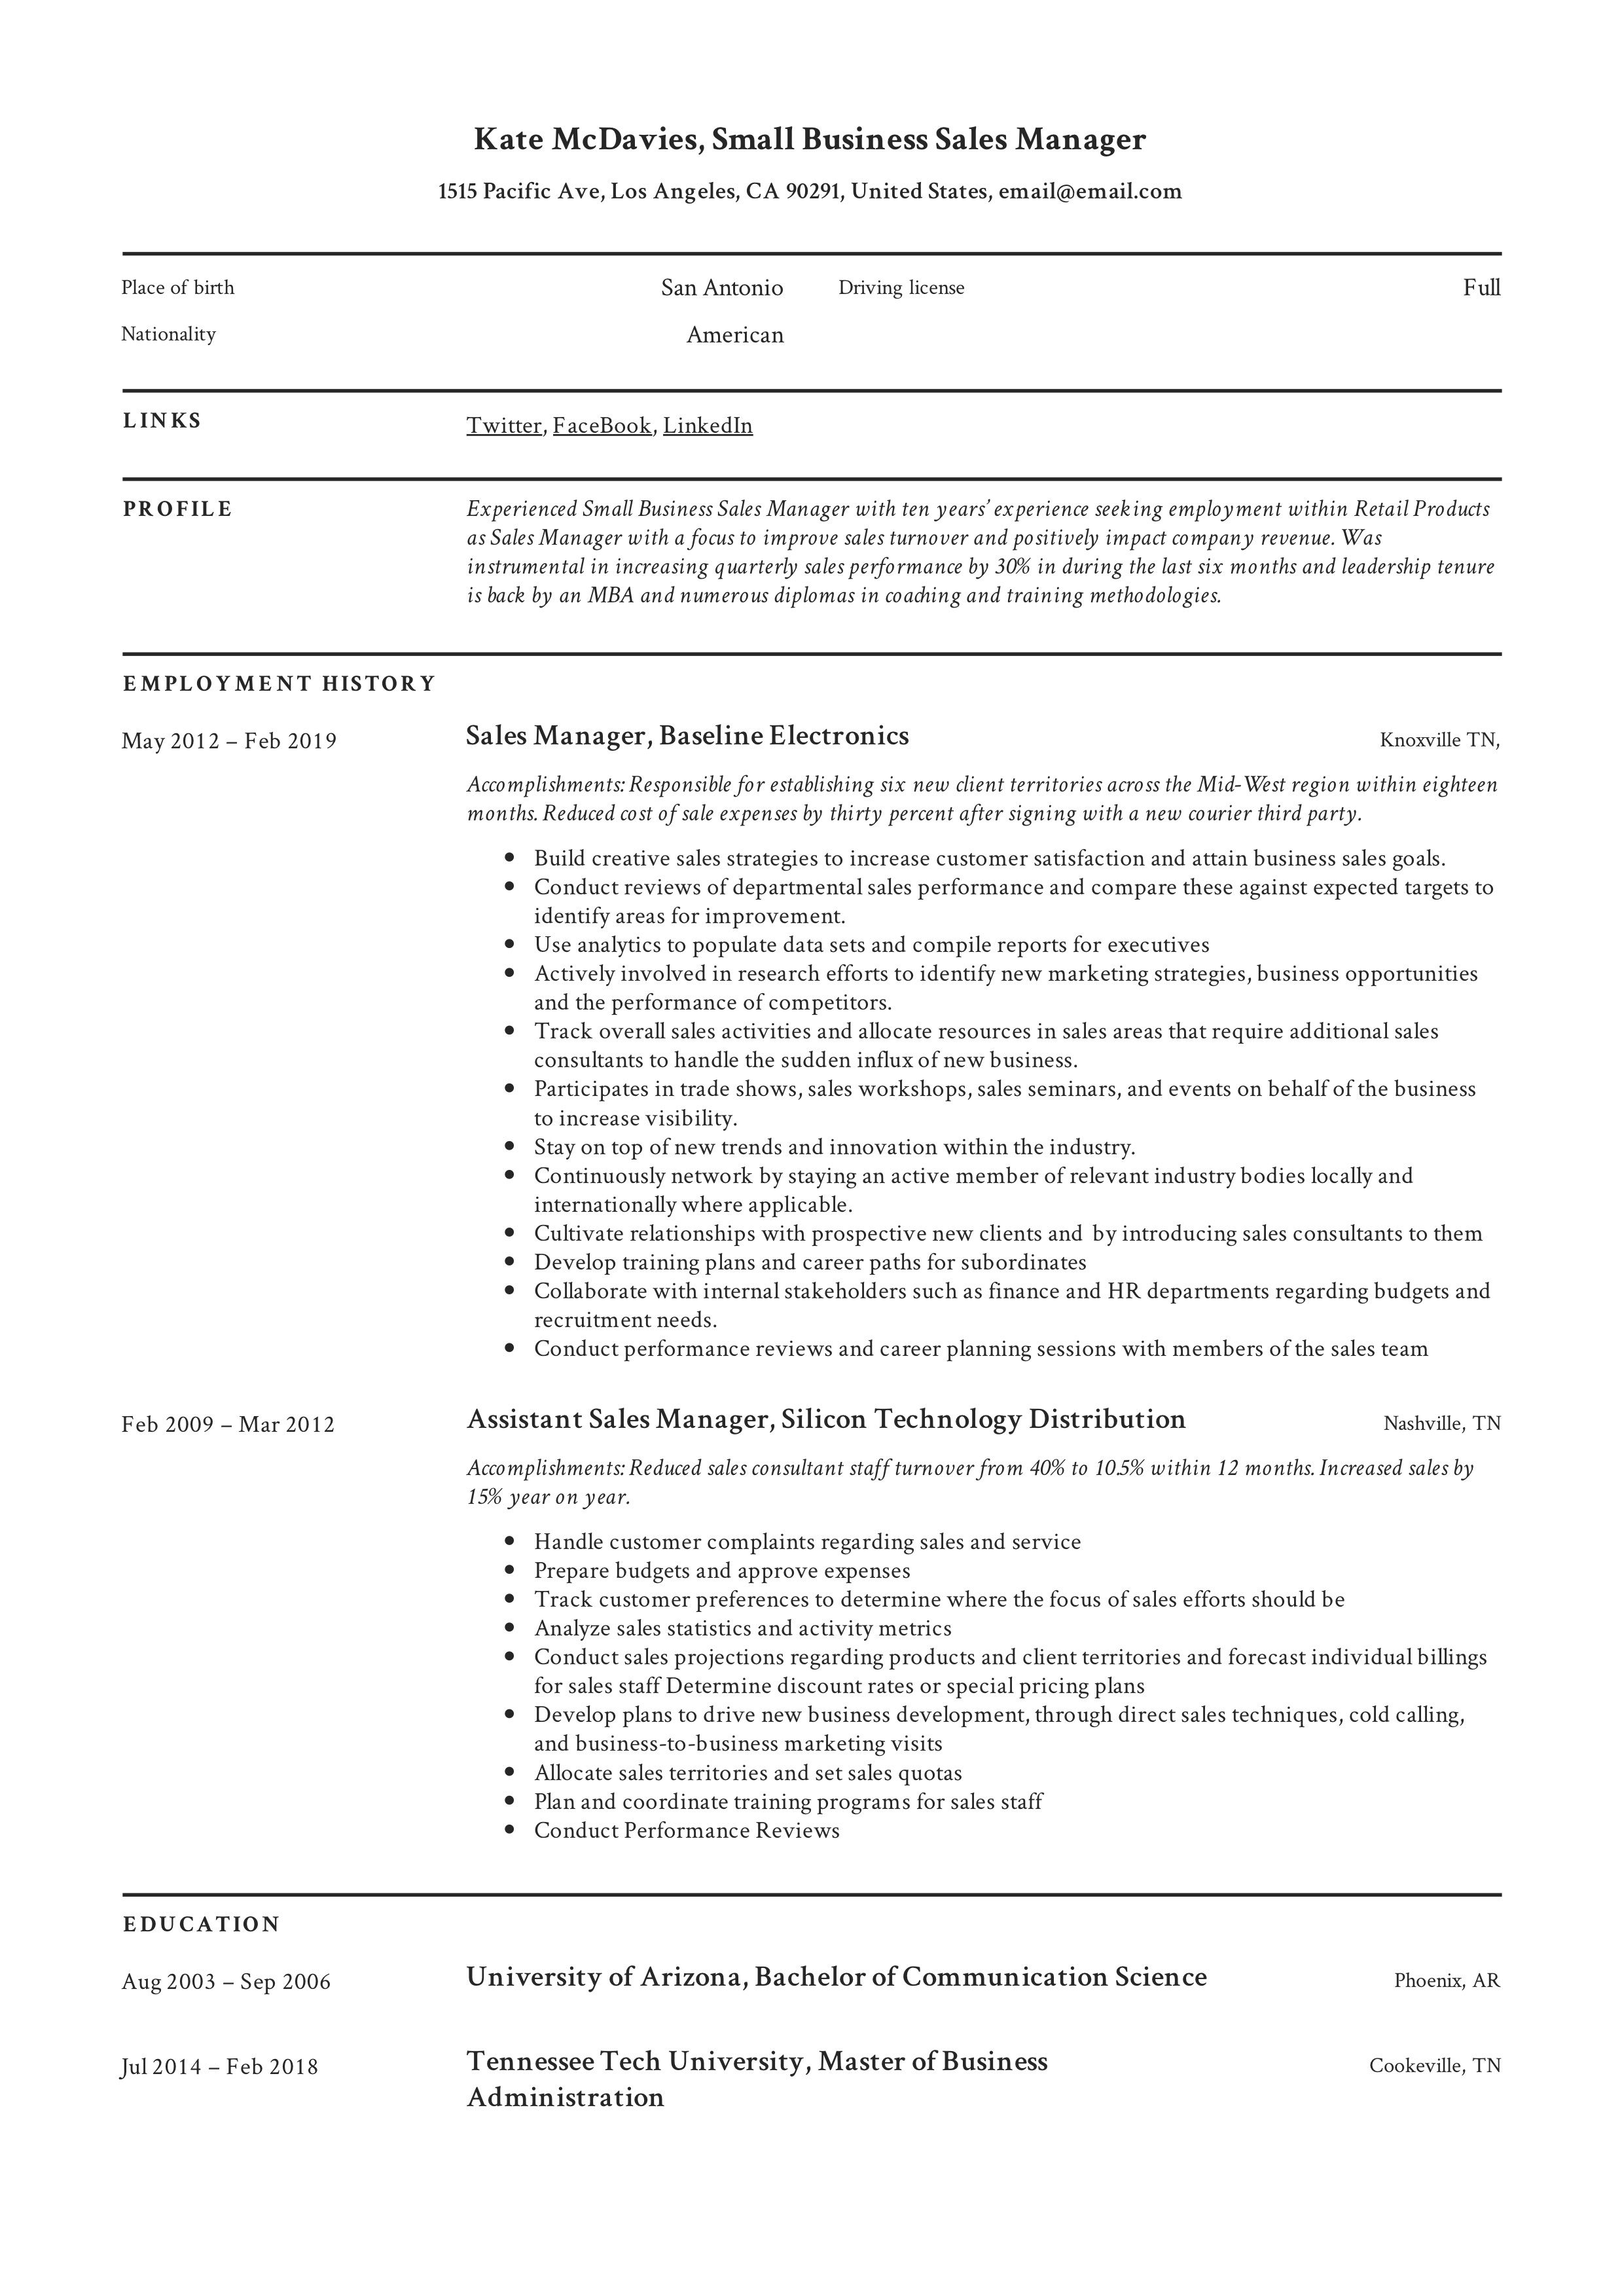 Small Business Sales Manager Resume Template in 2020